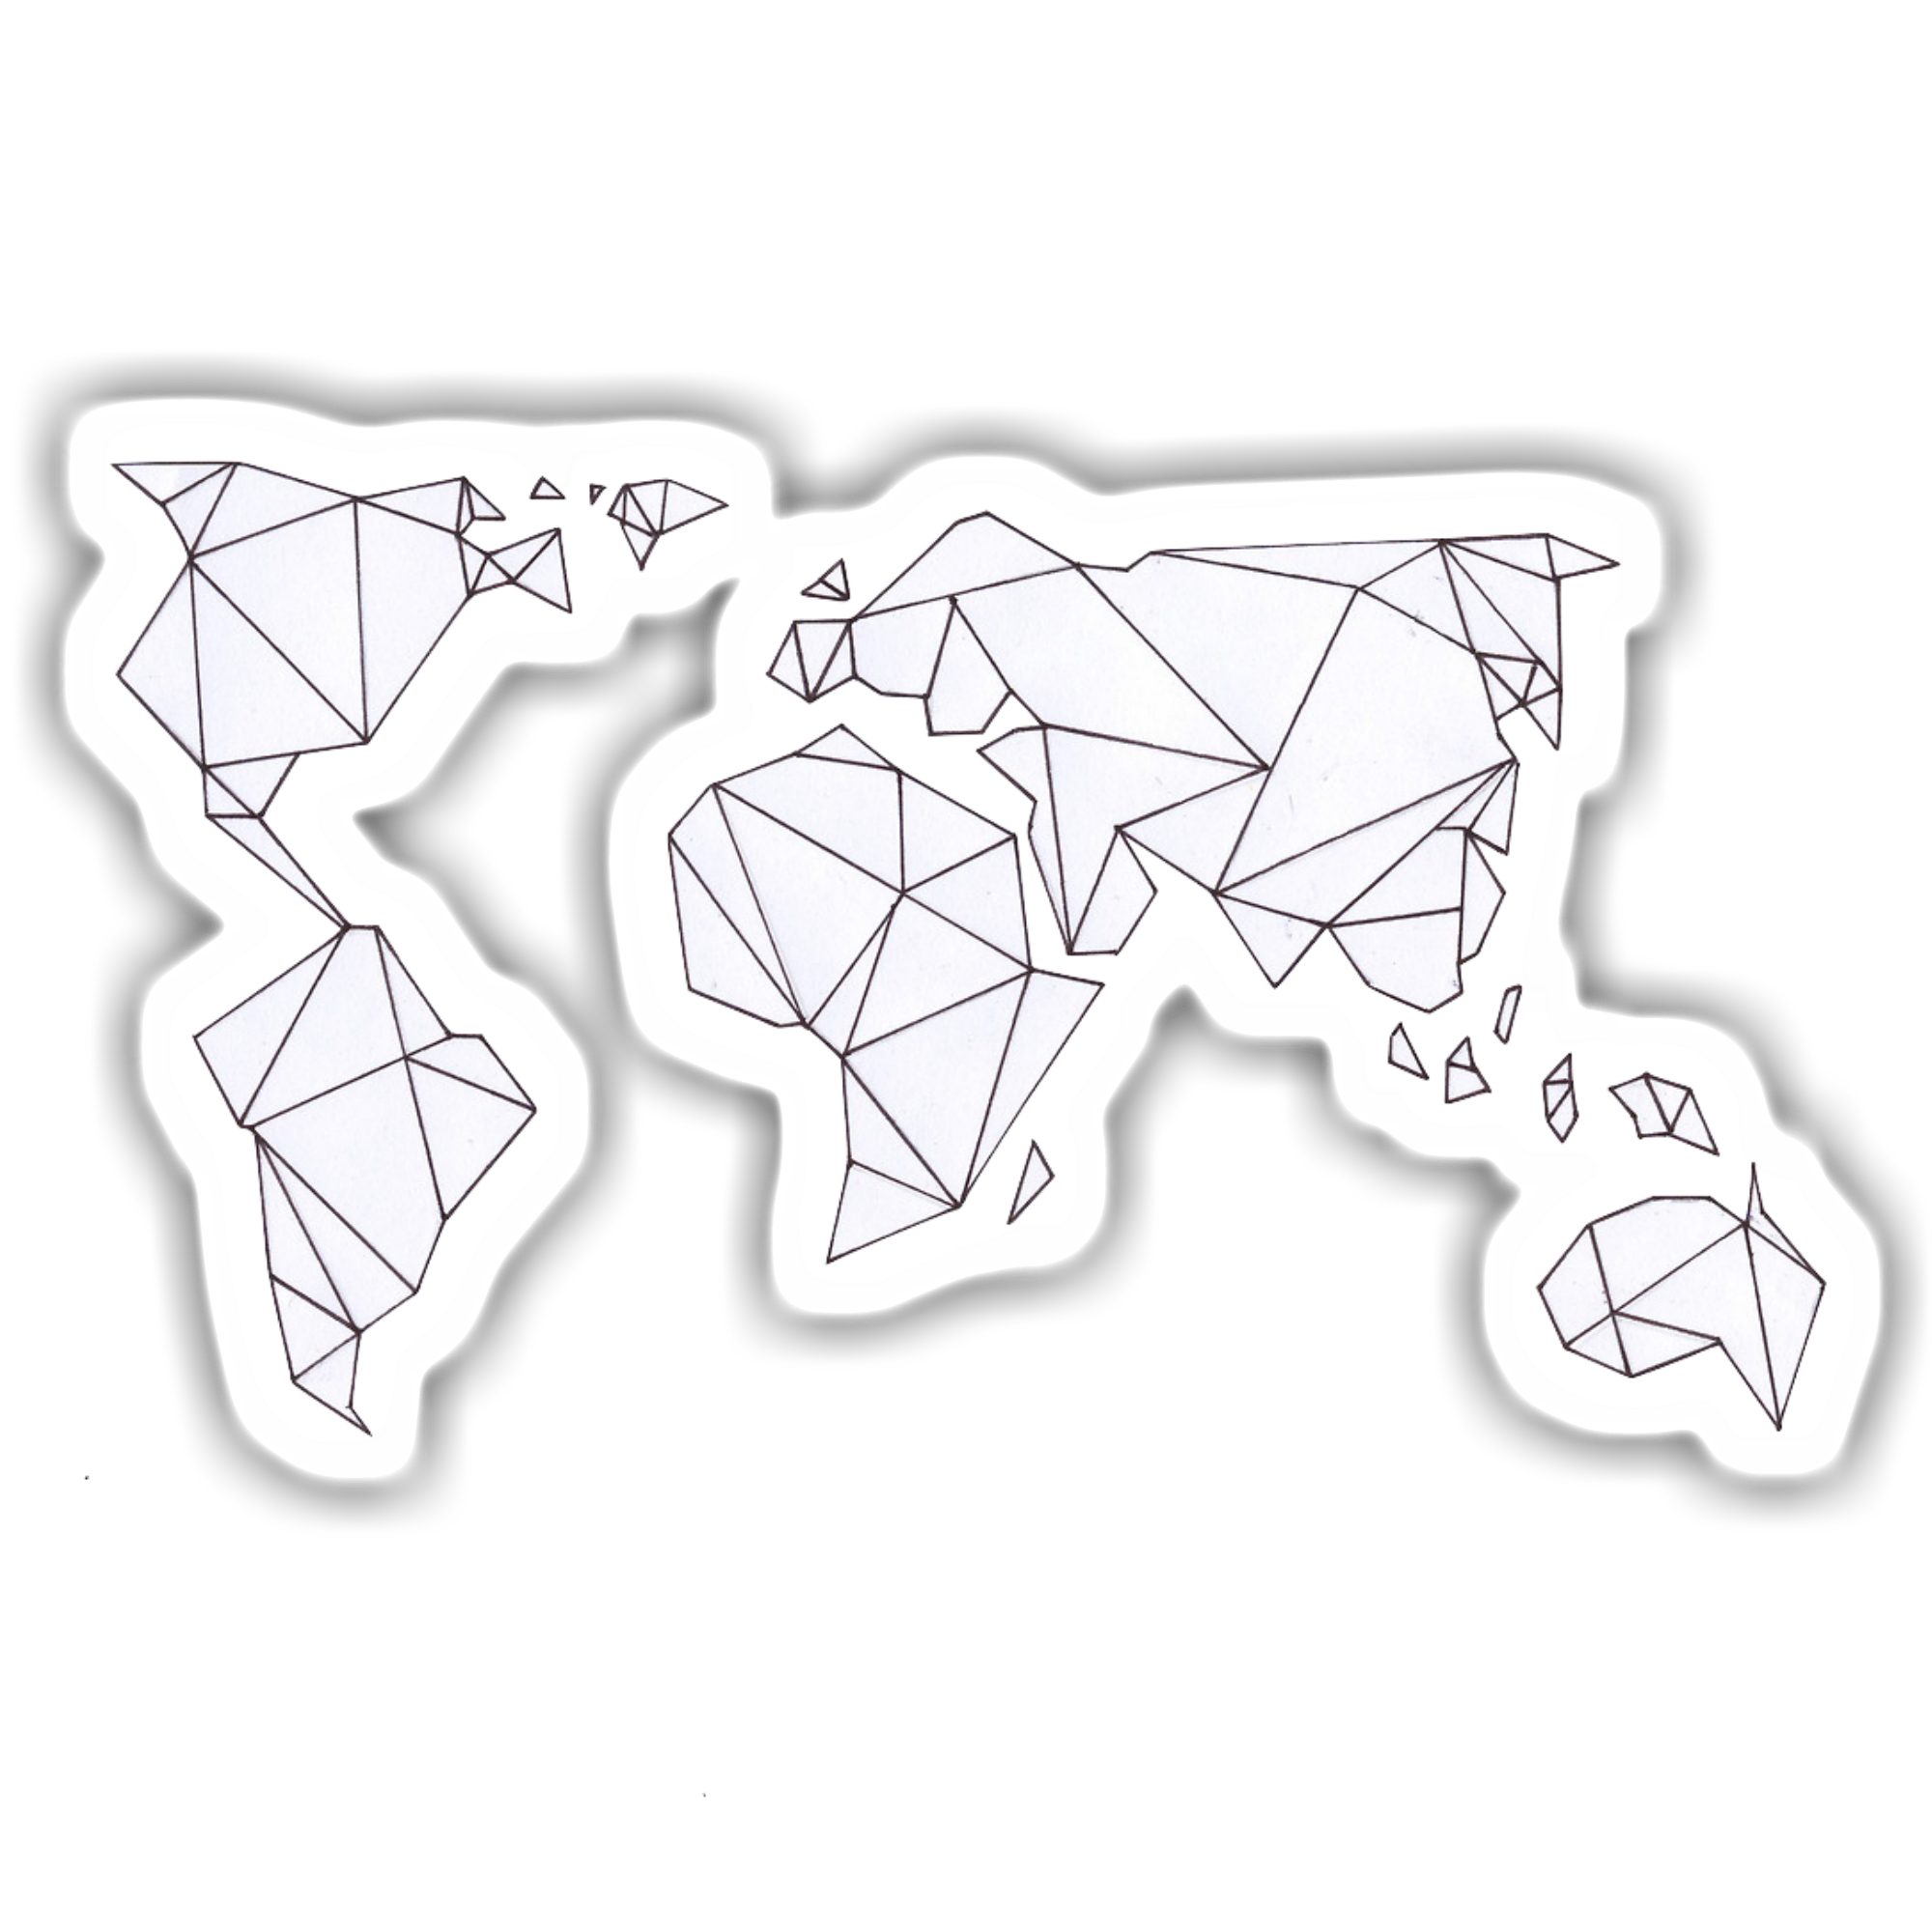 A sticker of a geometric world map this sticker is waterproof and a sticker of a geometric world map this sticker is waterproof and is 105 x 65cm with a 3mm white border stick to anything like laptops notebooks gumiabroncs Choice Image